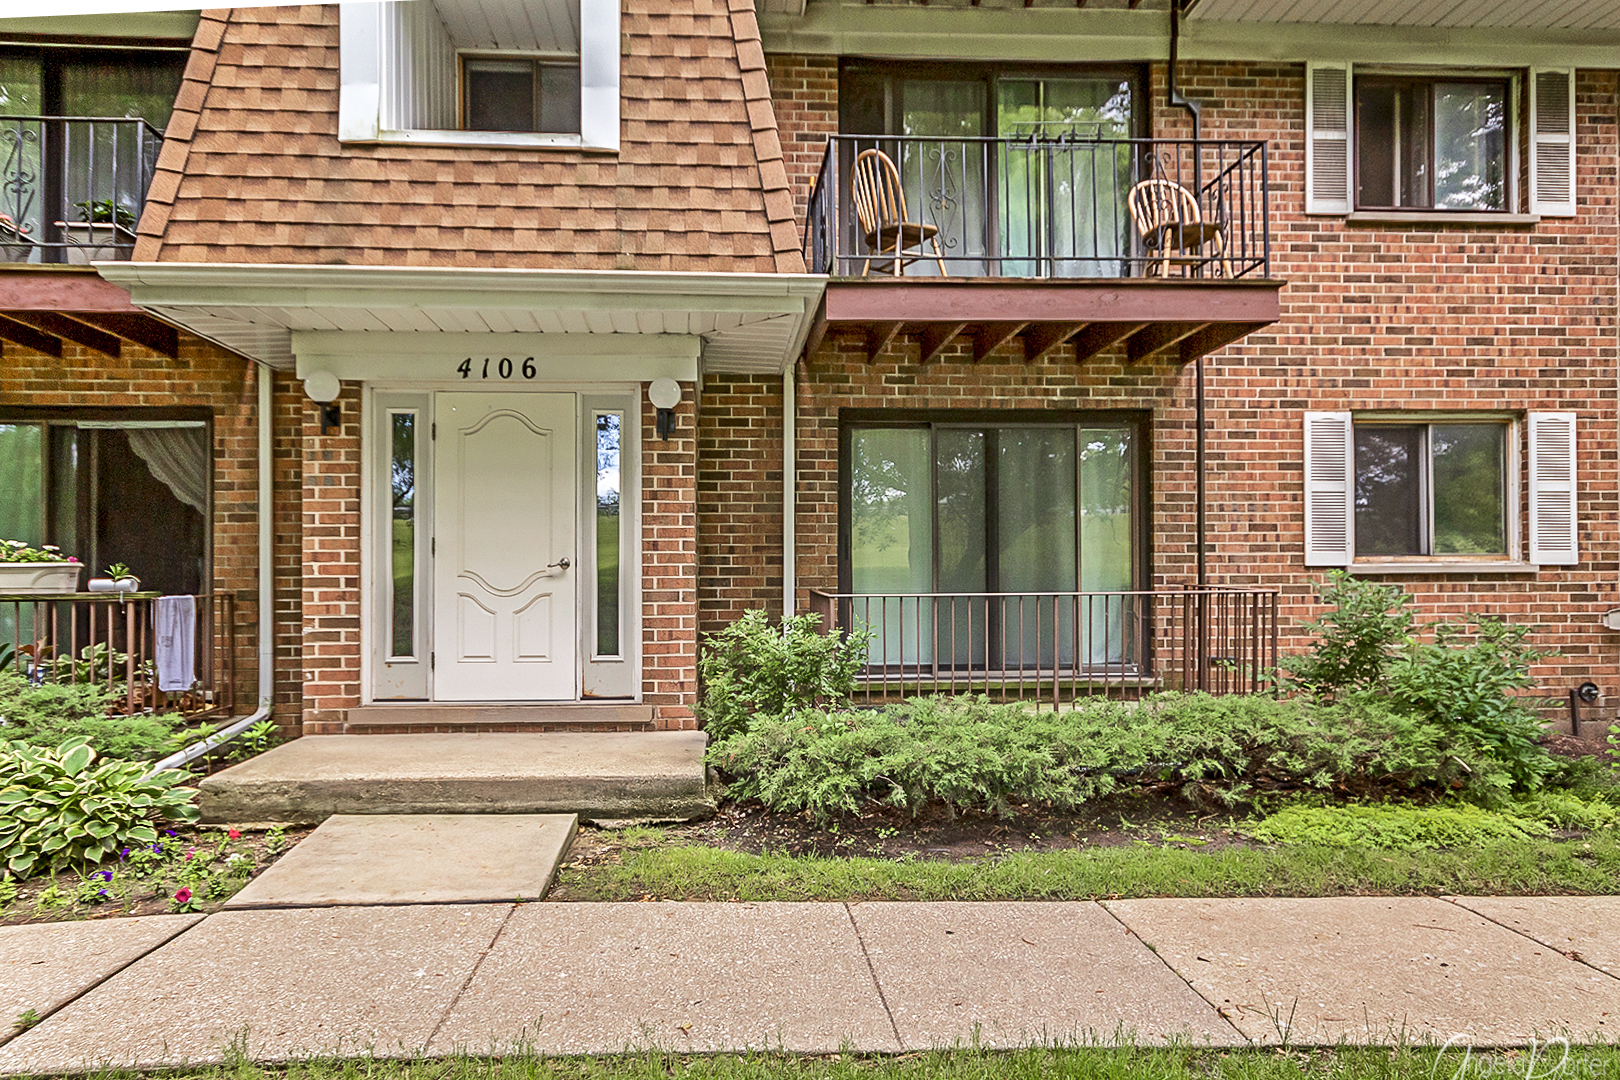 New Listings property for sale at 4106 Cove Lane 1D, Glenview Illinois 60025